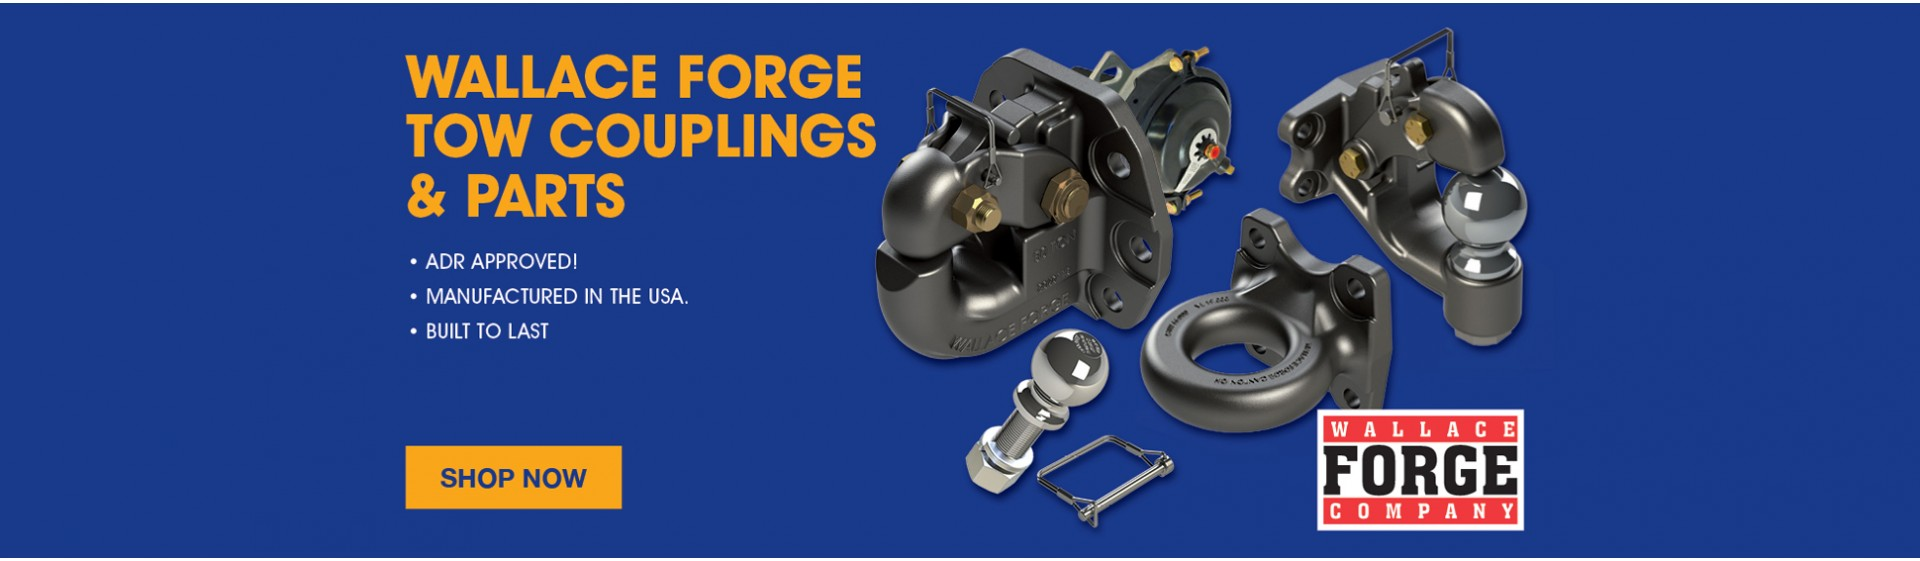 Wallace Forge Tow Couplings